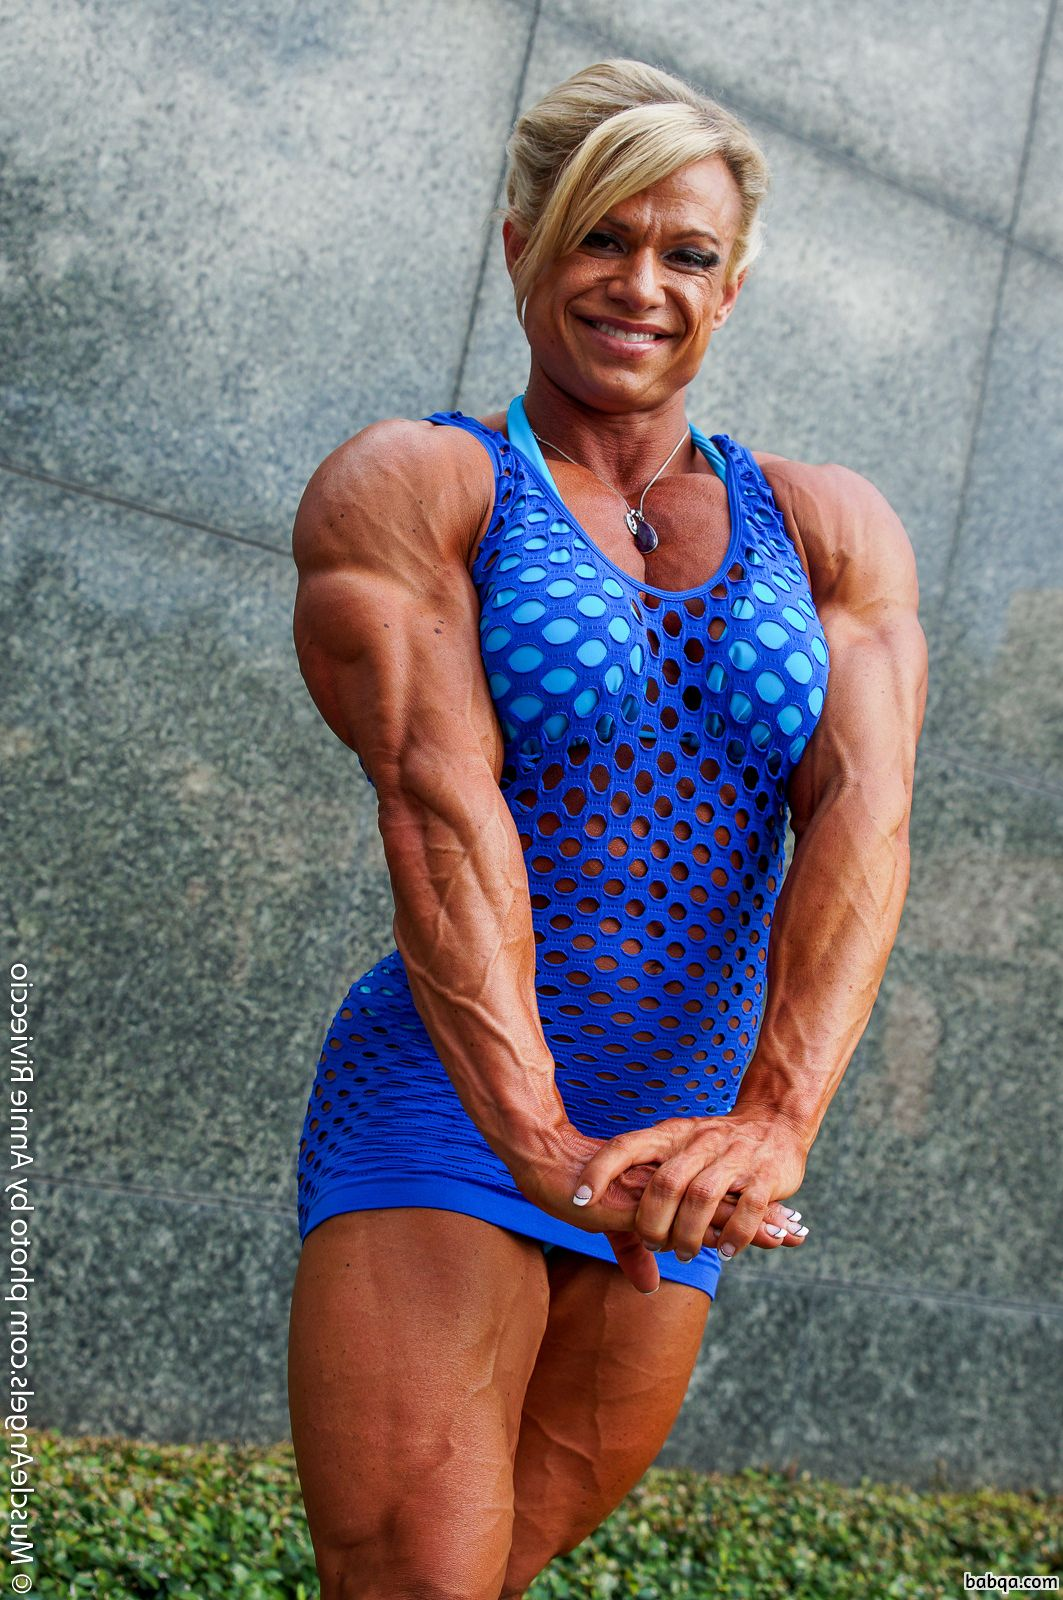 hot lady with fitness body and muscle arms image from facebook